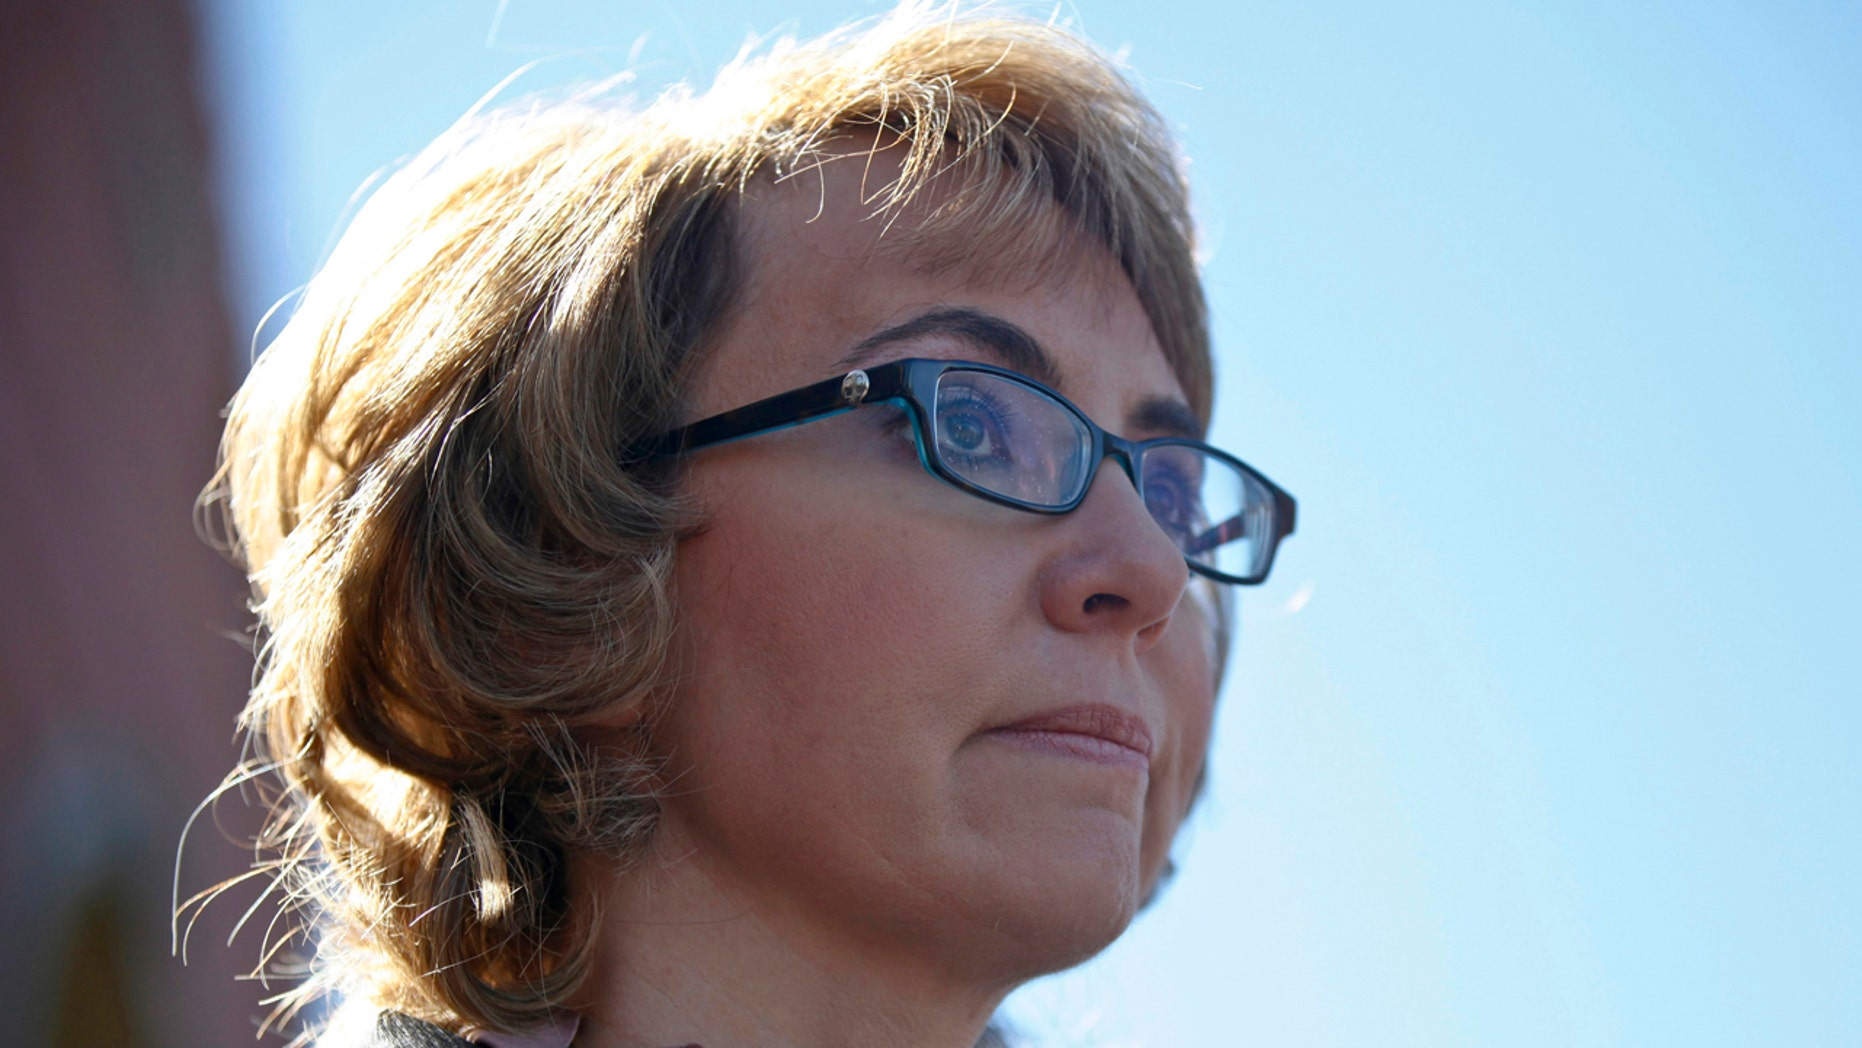 Former congresswoman Gabrielle Giffords addresses a news conference for victims of the January 8, 2011 Tucson shooting, at the Safeway grocery store parking lot where Giffords was shot during the incident in Tucson March 6, 2013.